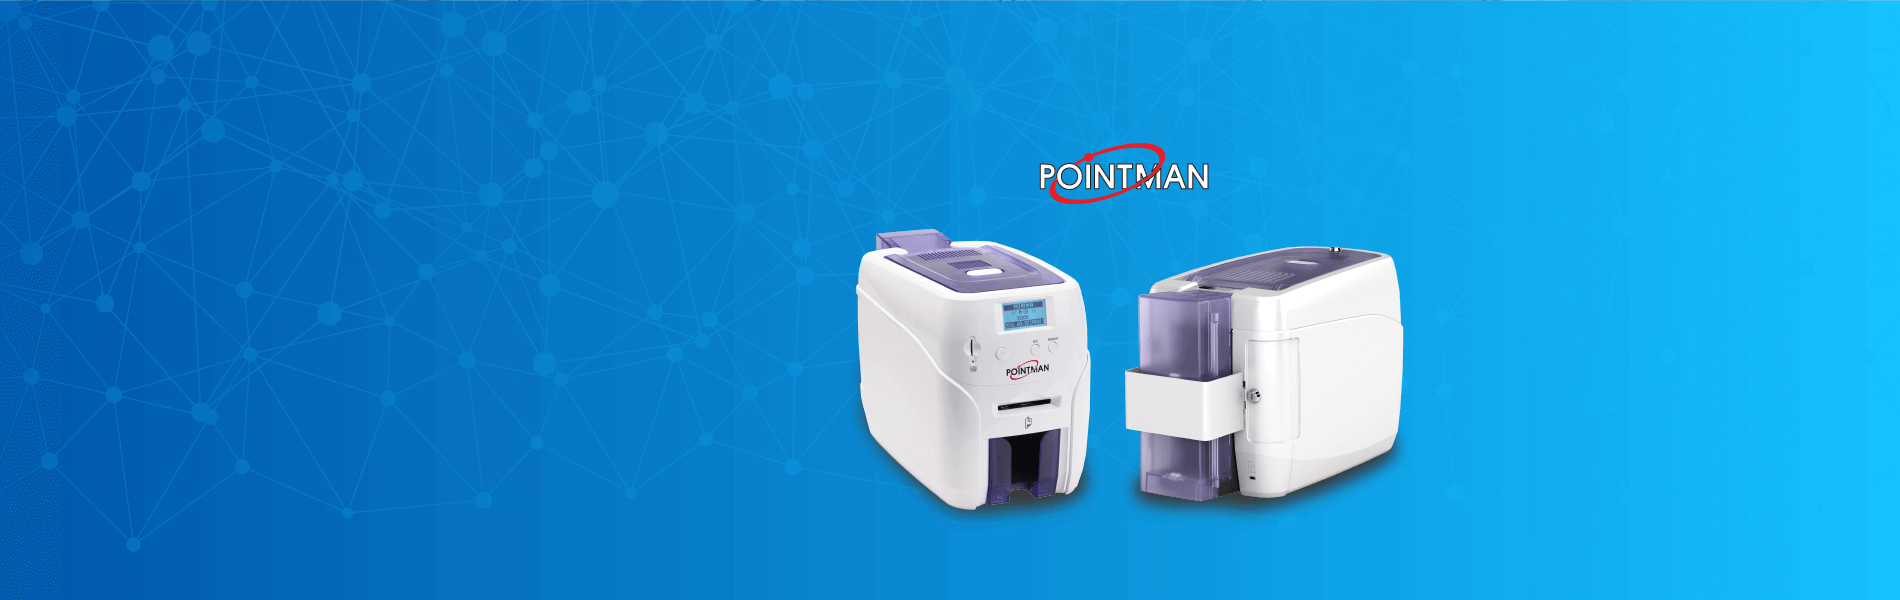 Pointman-id-card-printer